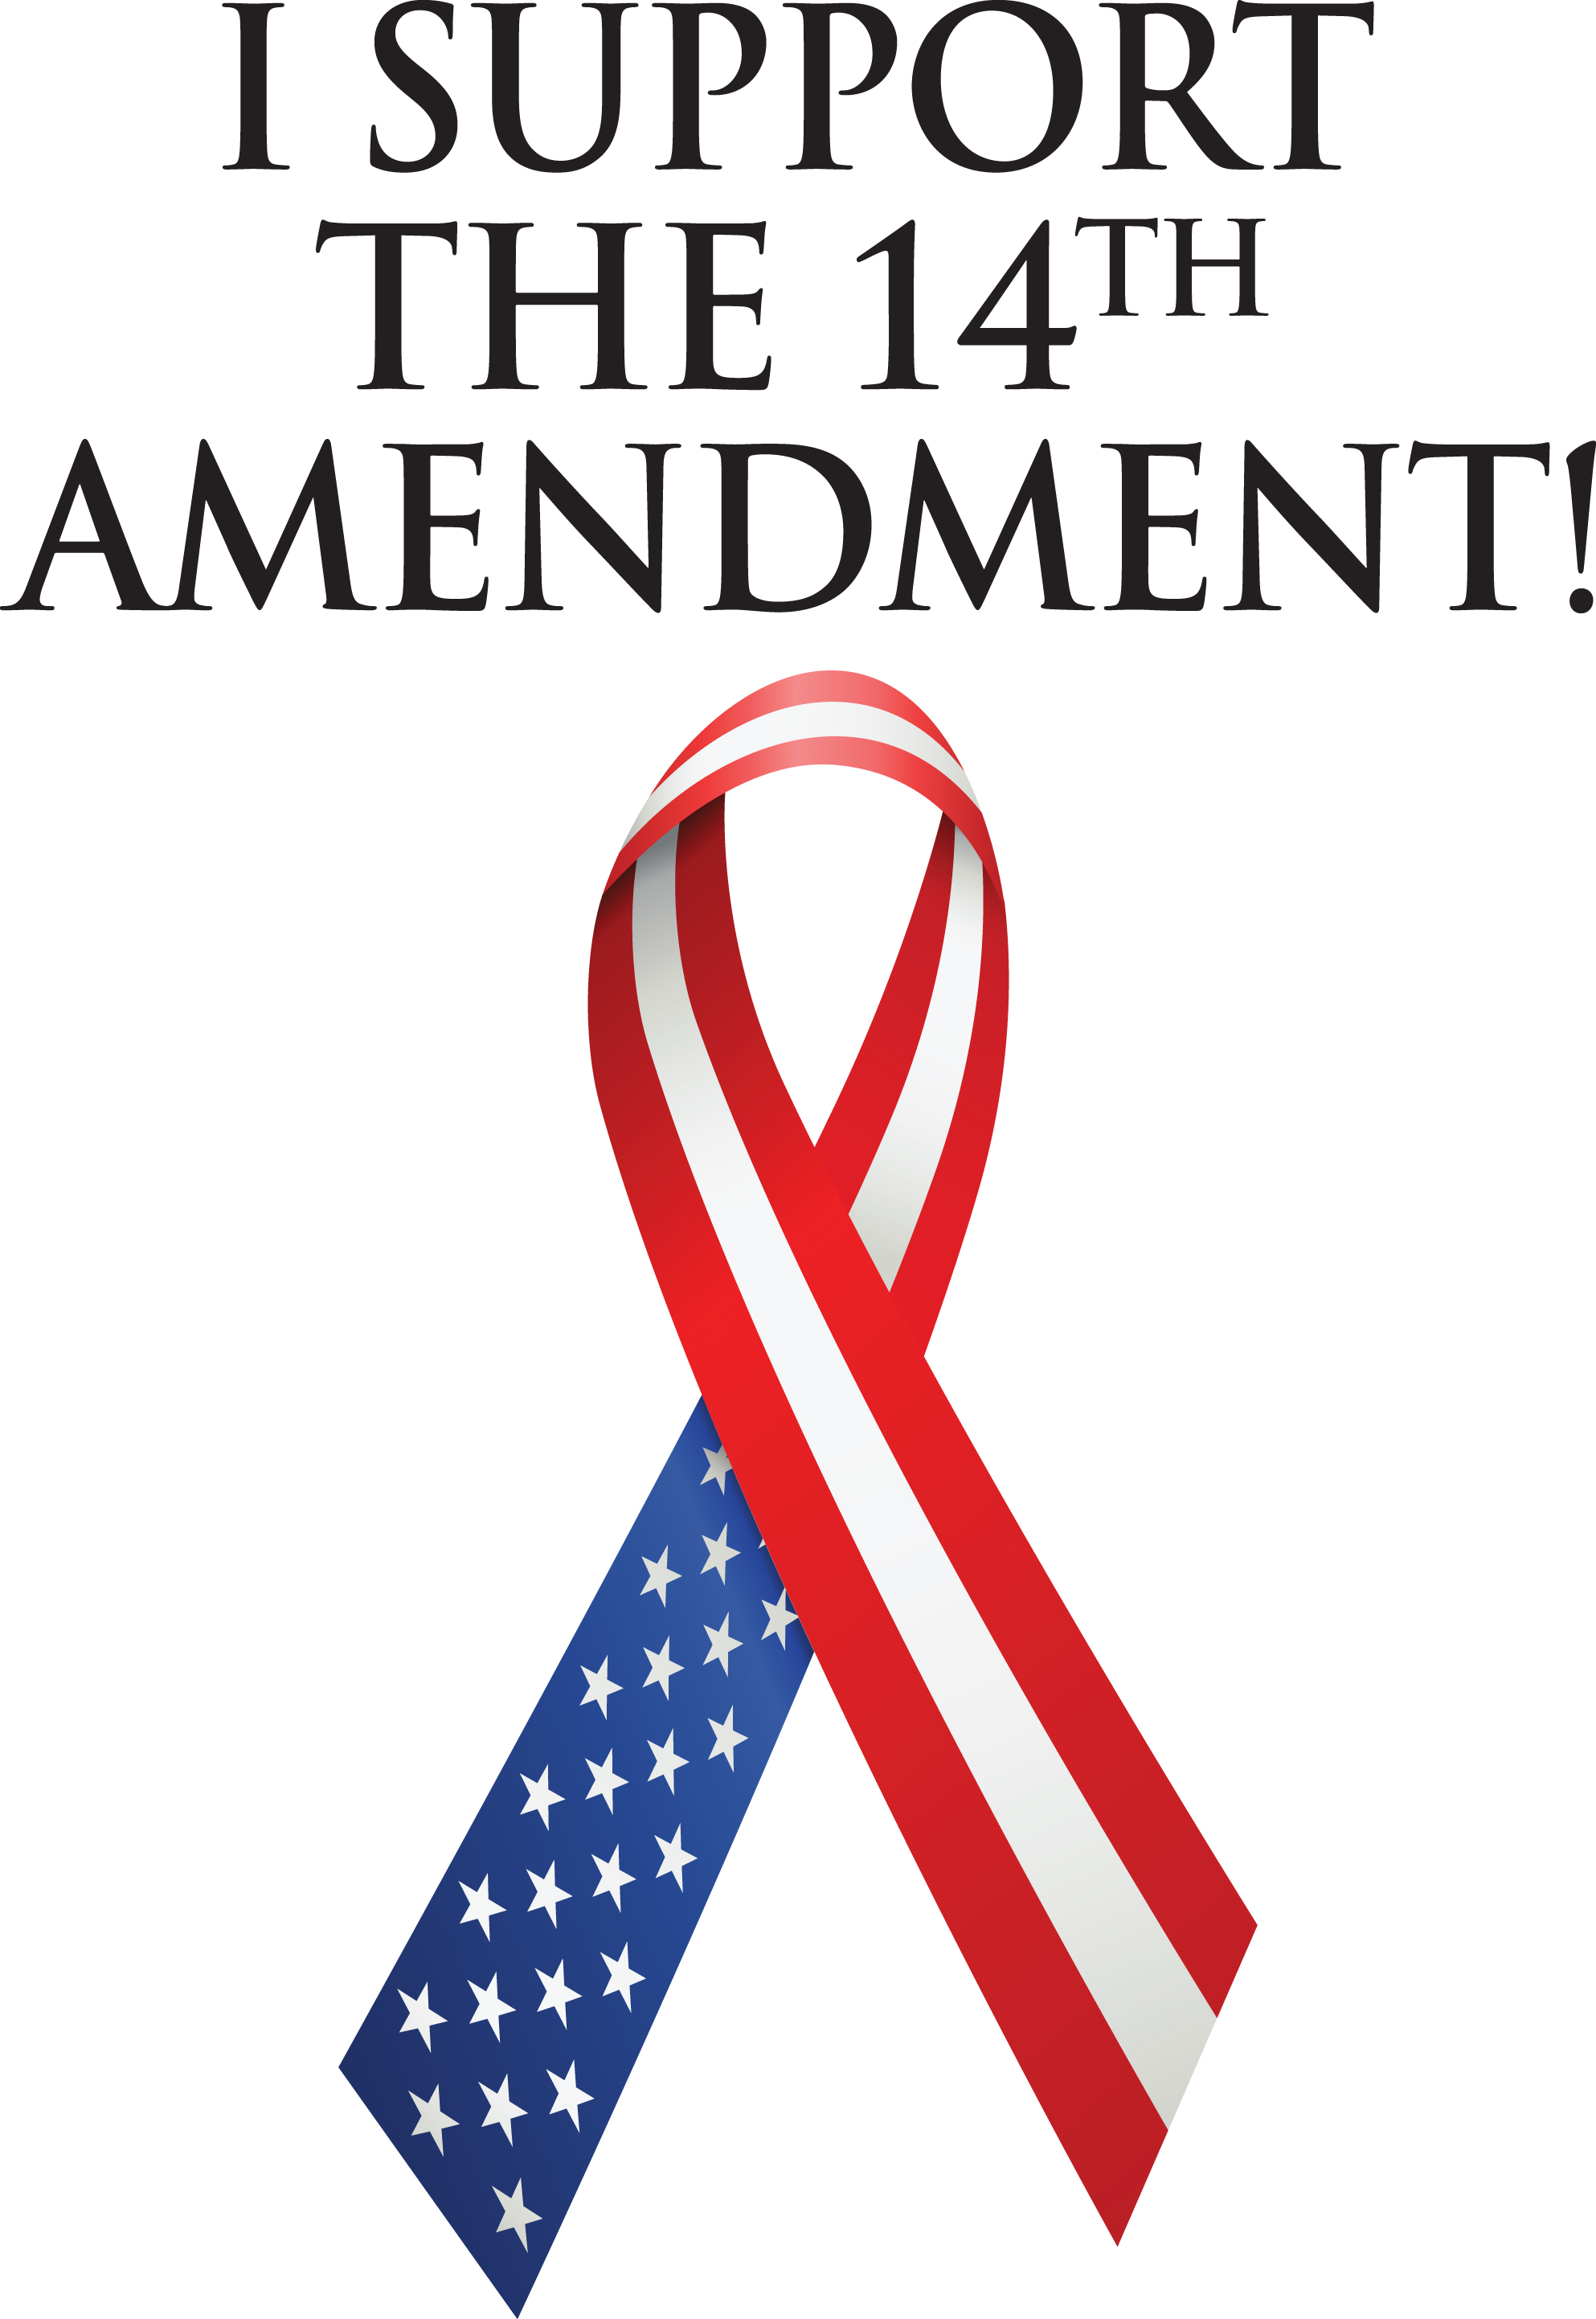 What is the 14th amendment?